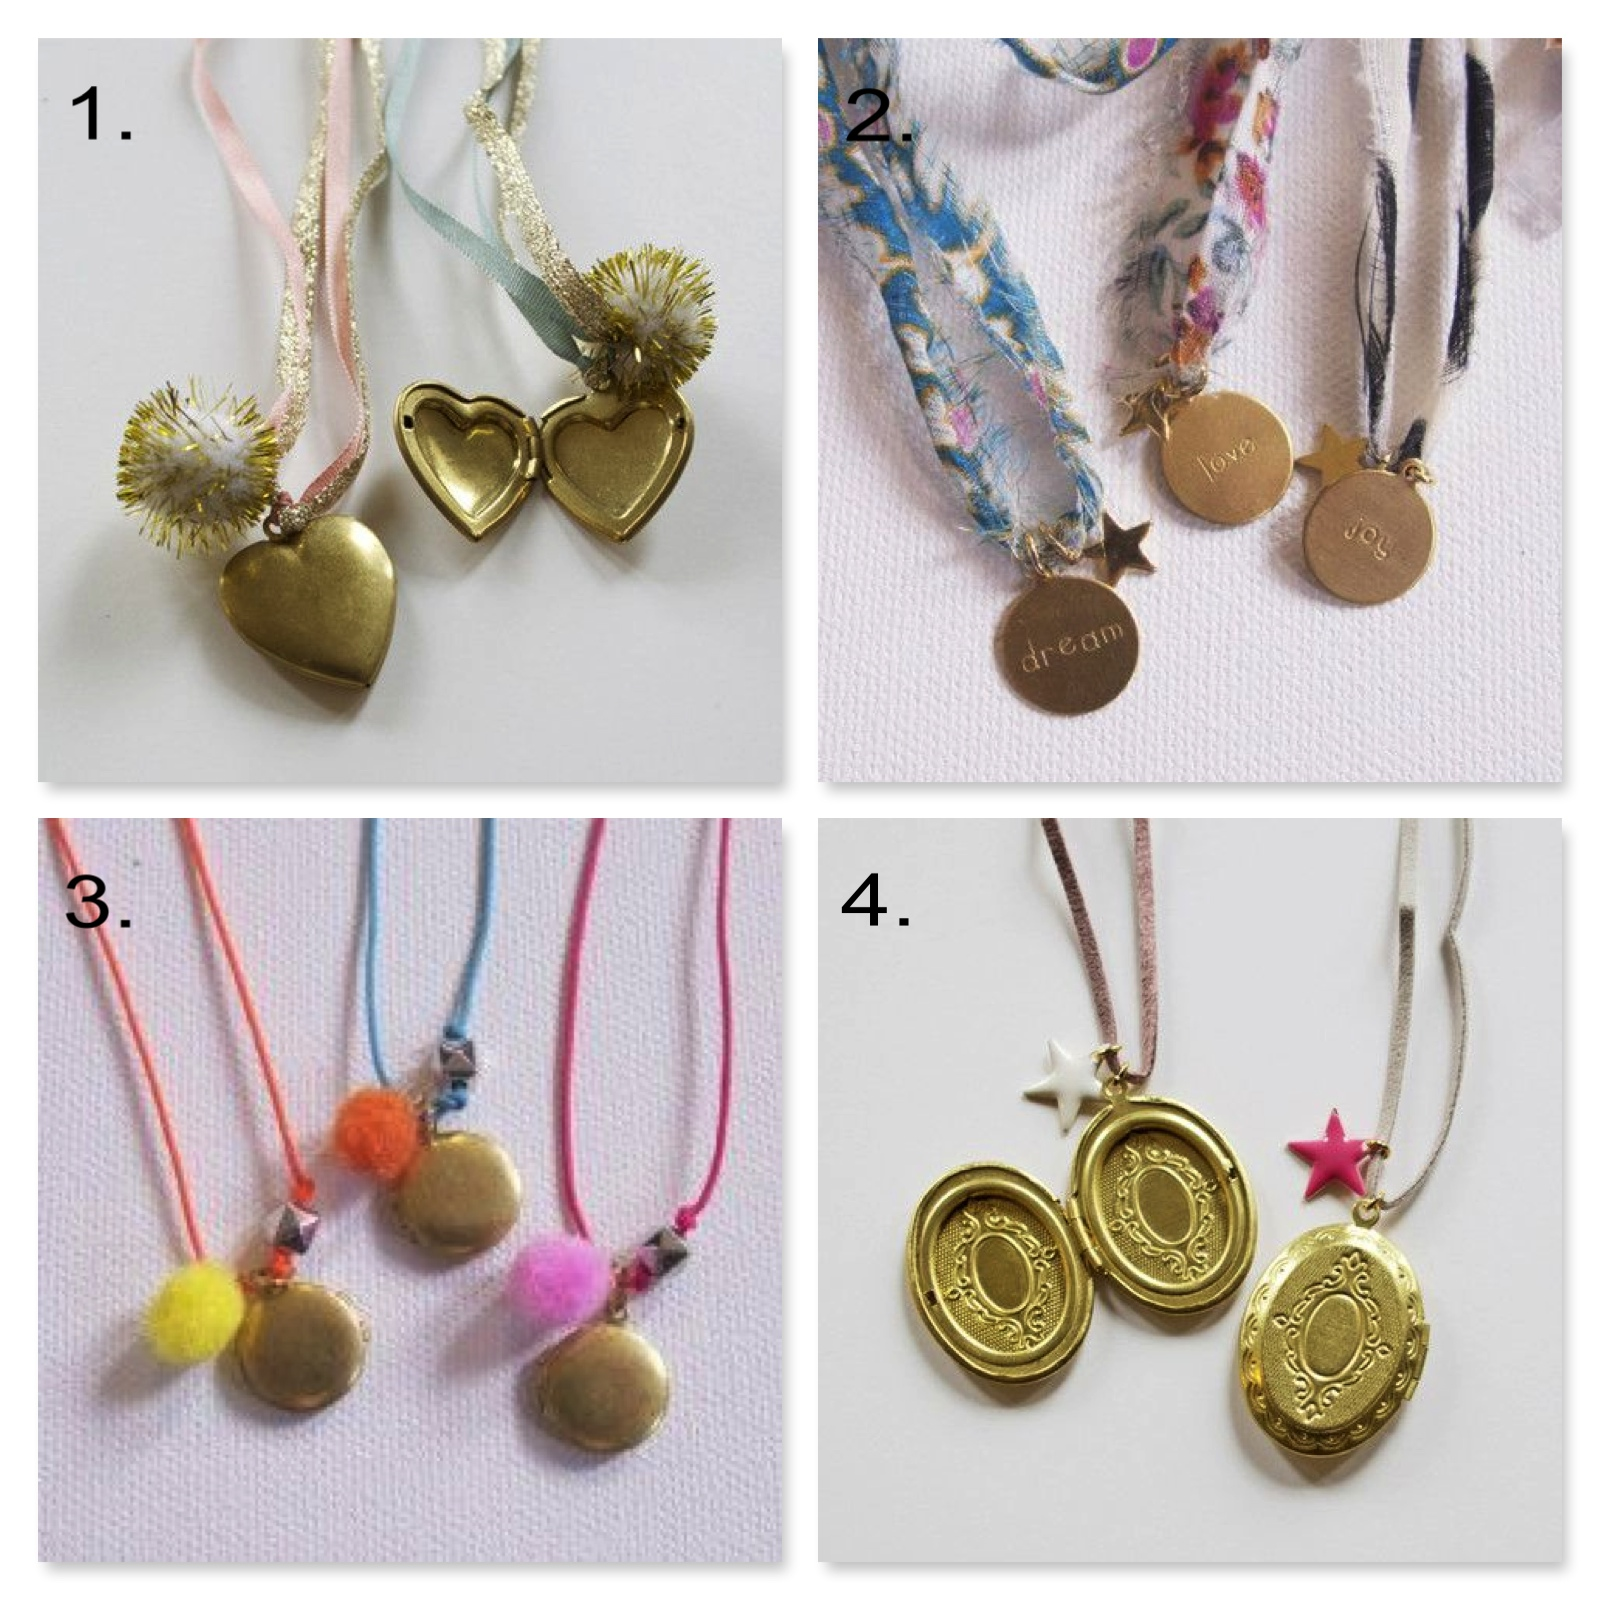 These are my favorite necklaces from  Atsuyo Et Akiko . They have some simple lockets, but are designed so well for Kids with colorful cords, pom poms, and fun star shape accents (stars is another trend I will talk about soon).The disk with the stamped emotions is also beautifully designed with a printed fabric cord. Your daughter would love to wear any one of these necklaces, so girly, and she just may put a picture of you in her locket.  1.  Heart Locket   2.  Ribbon Necklace- Coin+Star   3.  Fluo Locket Necklace   4.  Locket Star